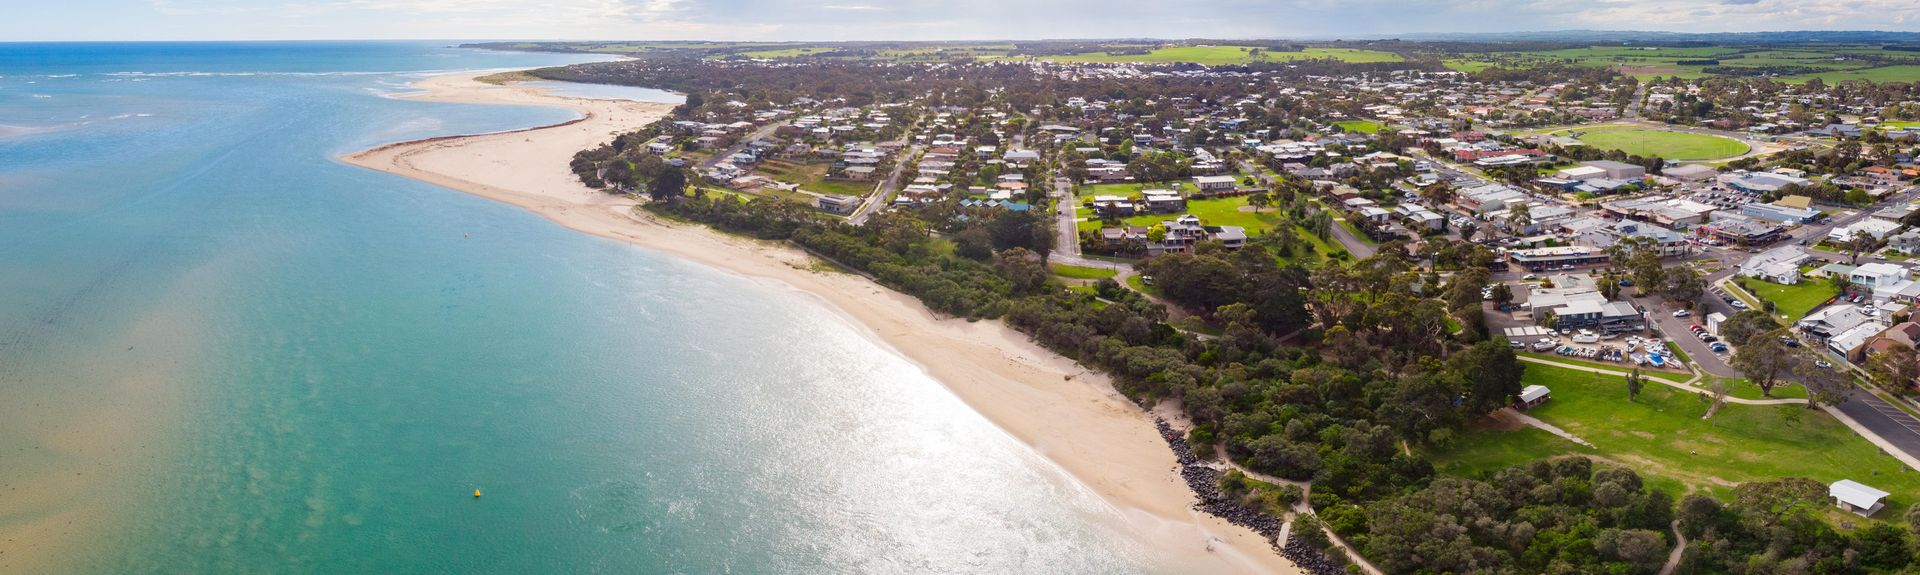 Inverloch, VIC, AU Vacation Rentals: house rentals & more | Vrbo